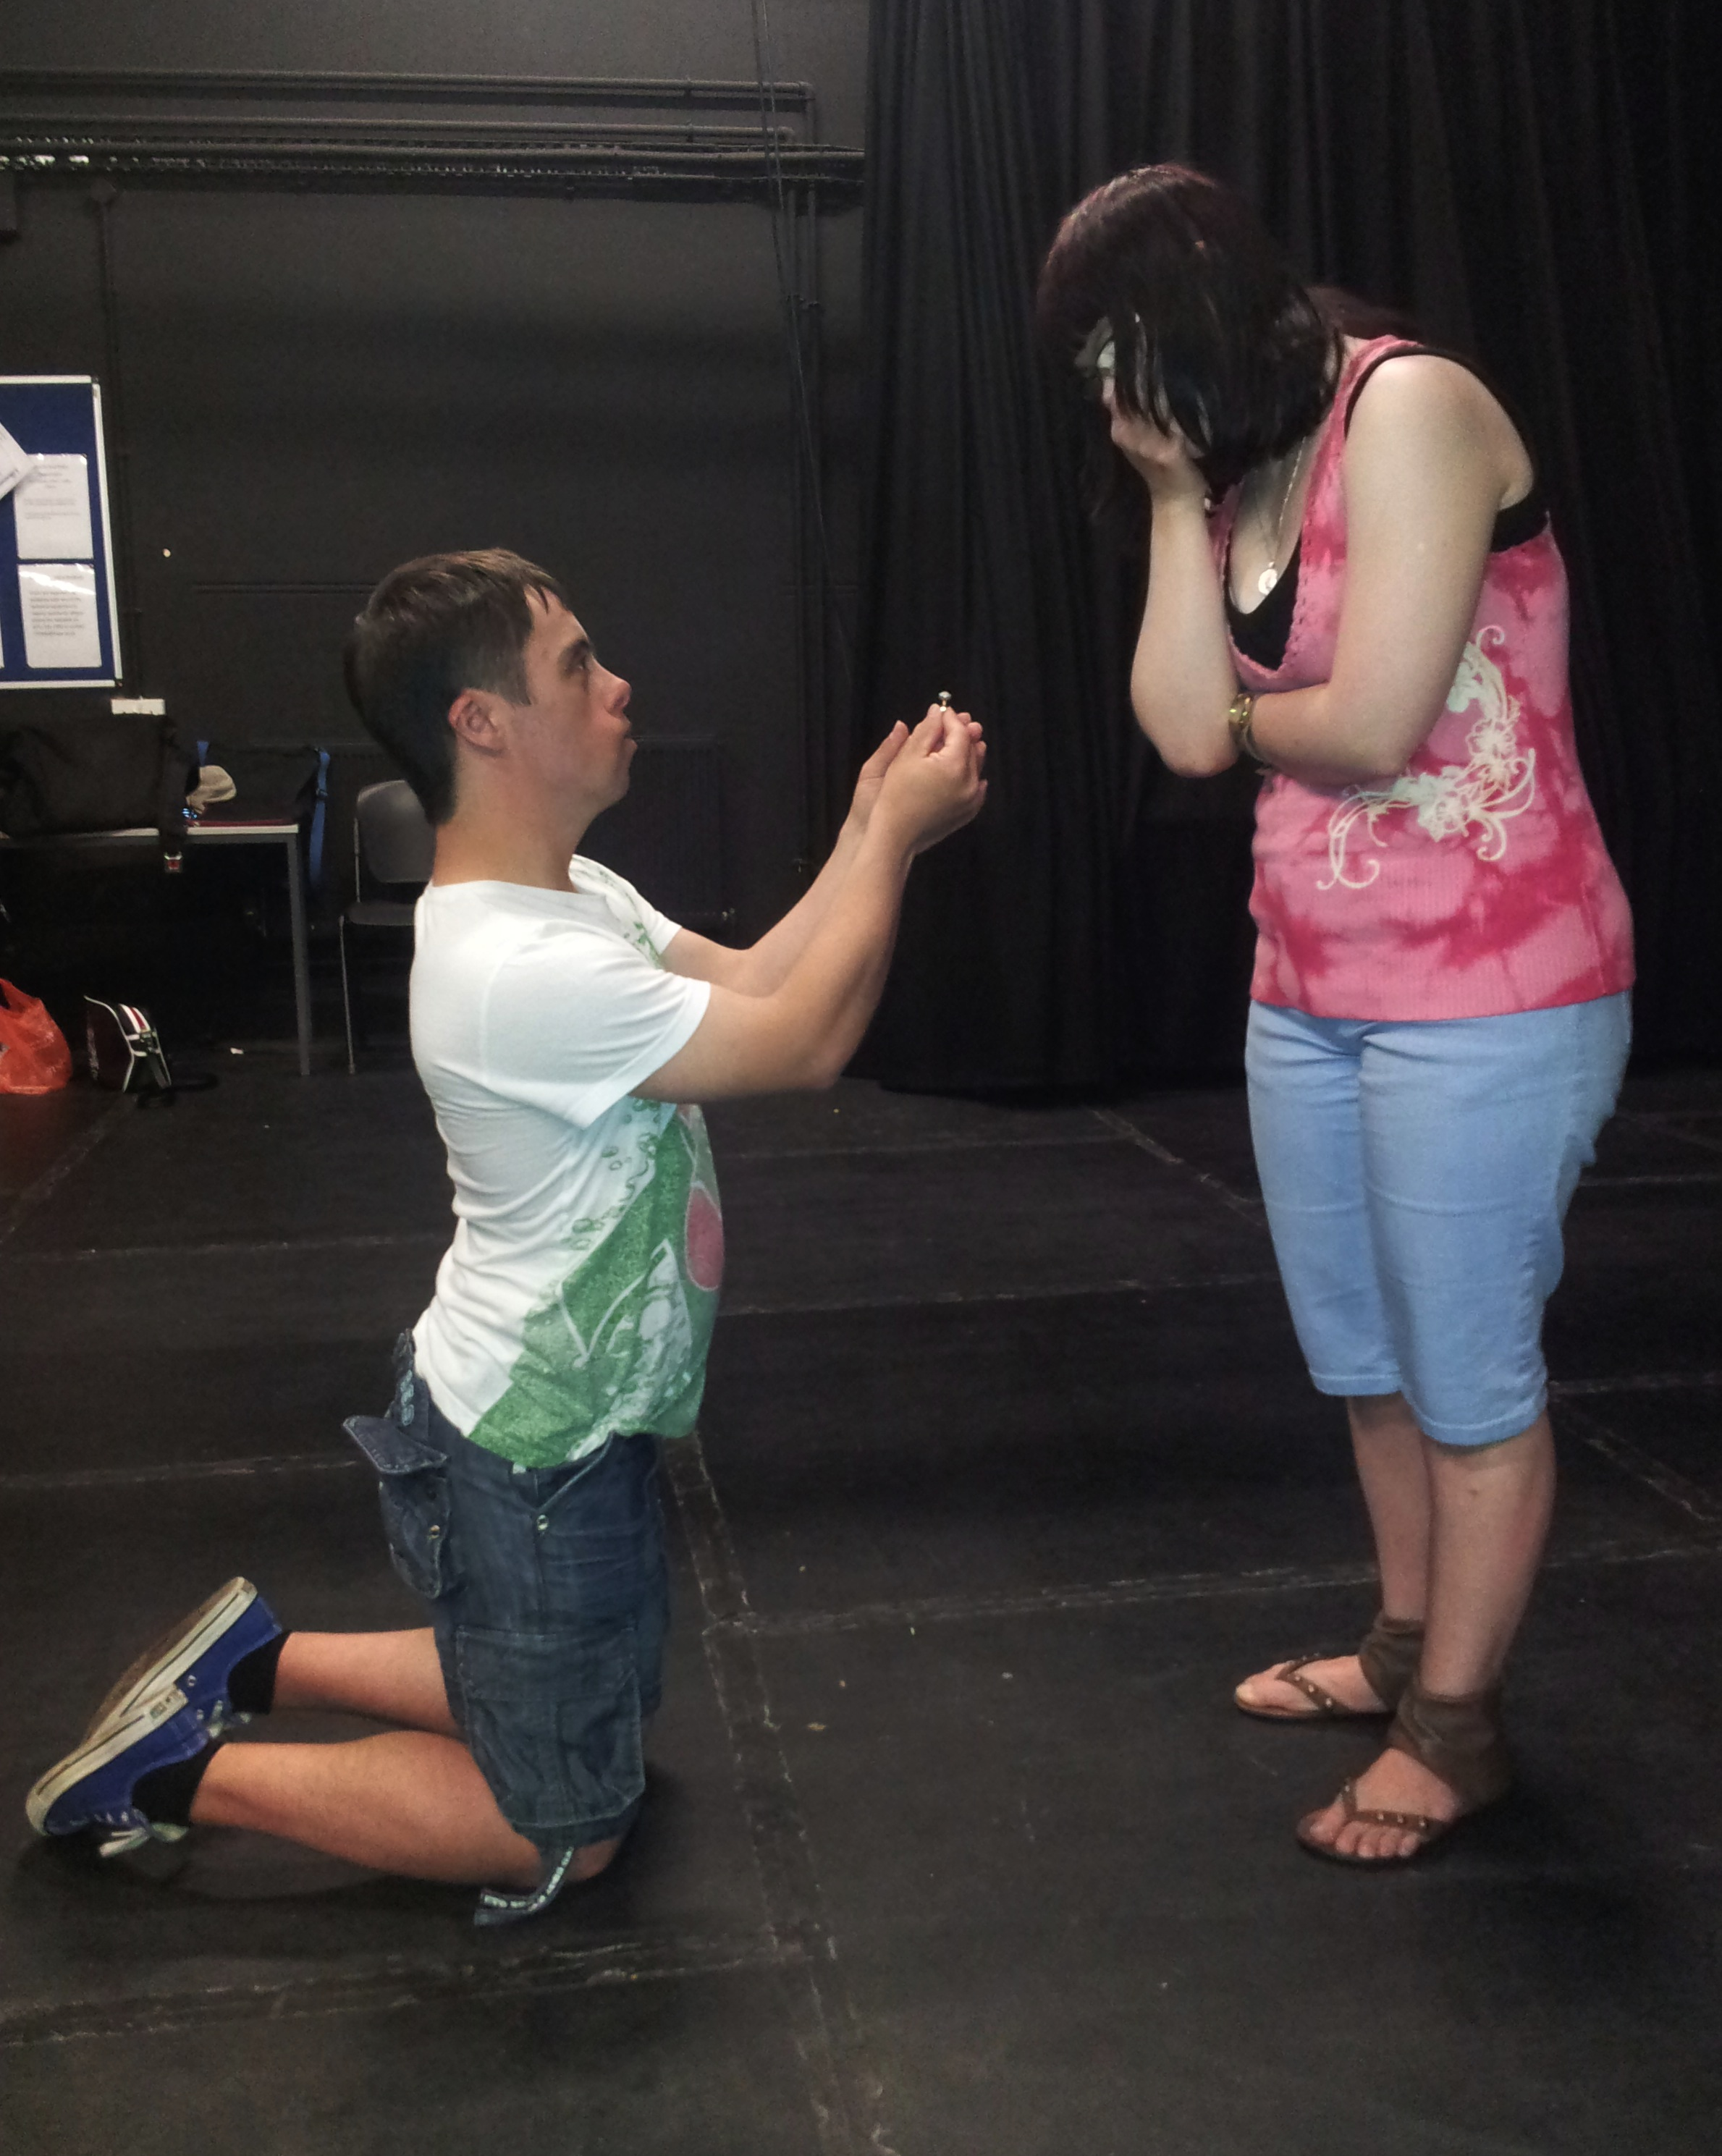 A kneeling man offers a ring to woman who holds her hands to her mouth in surprise